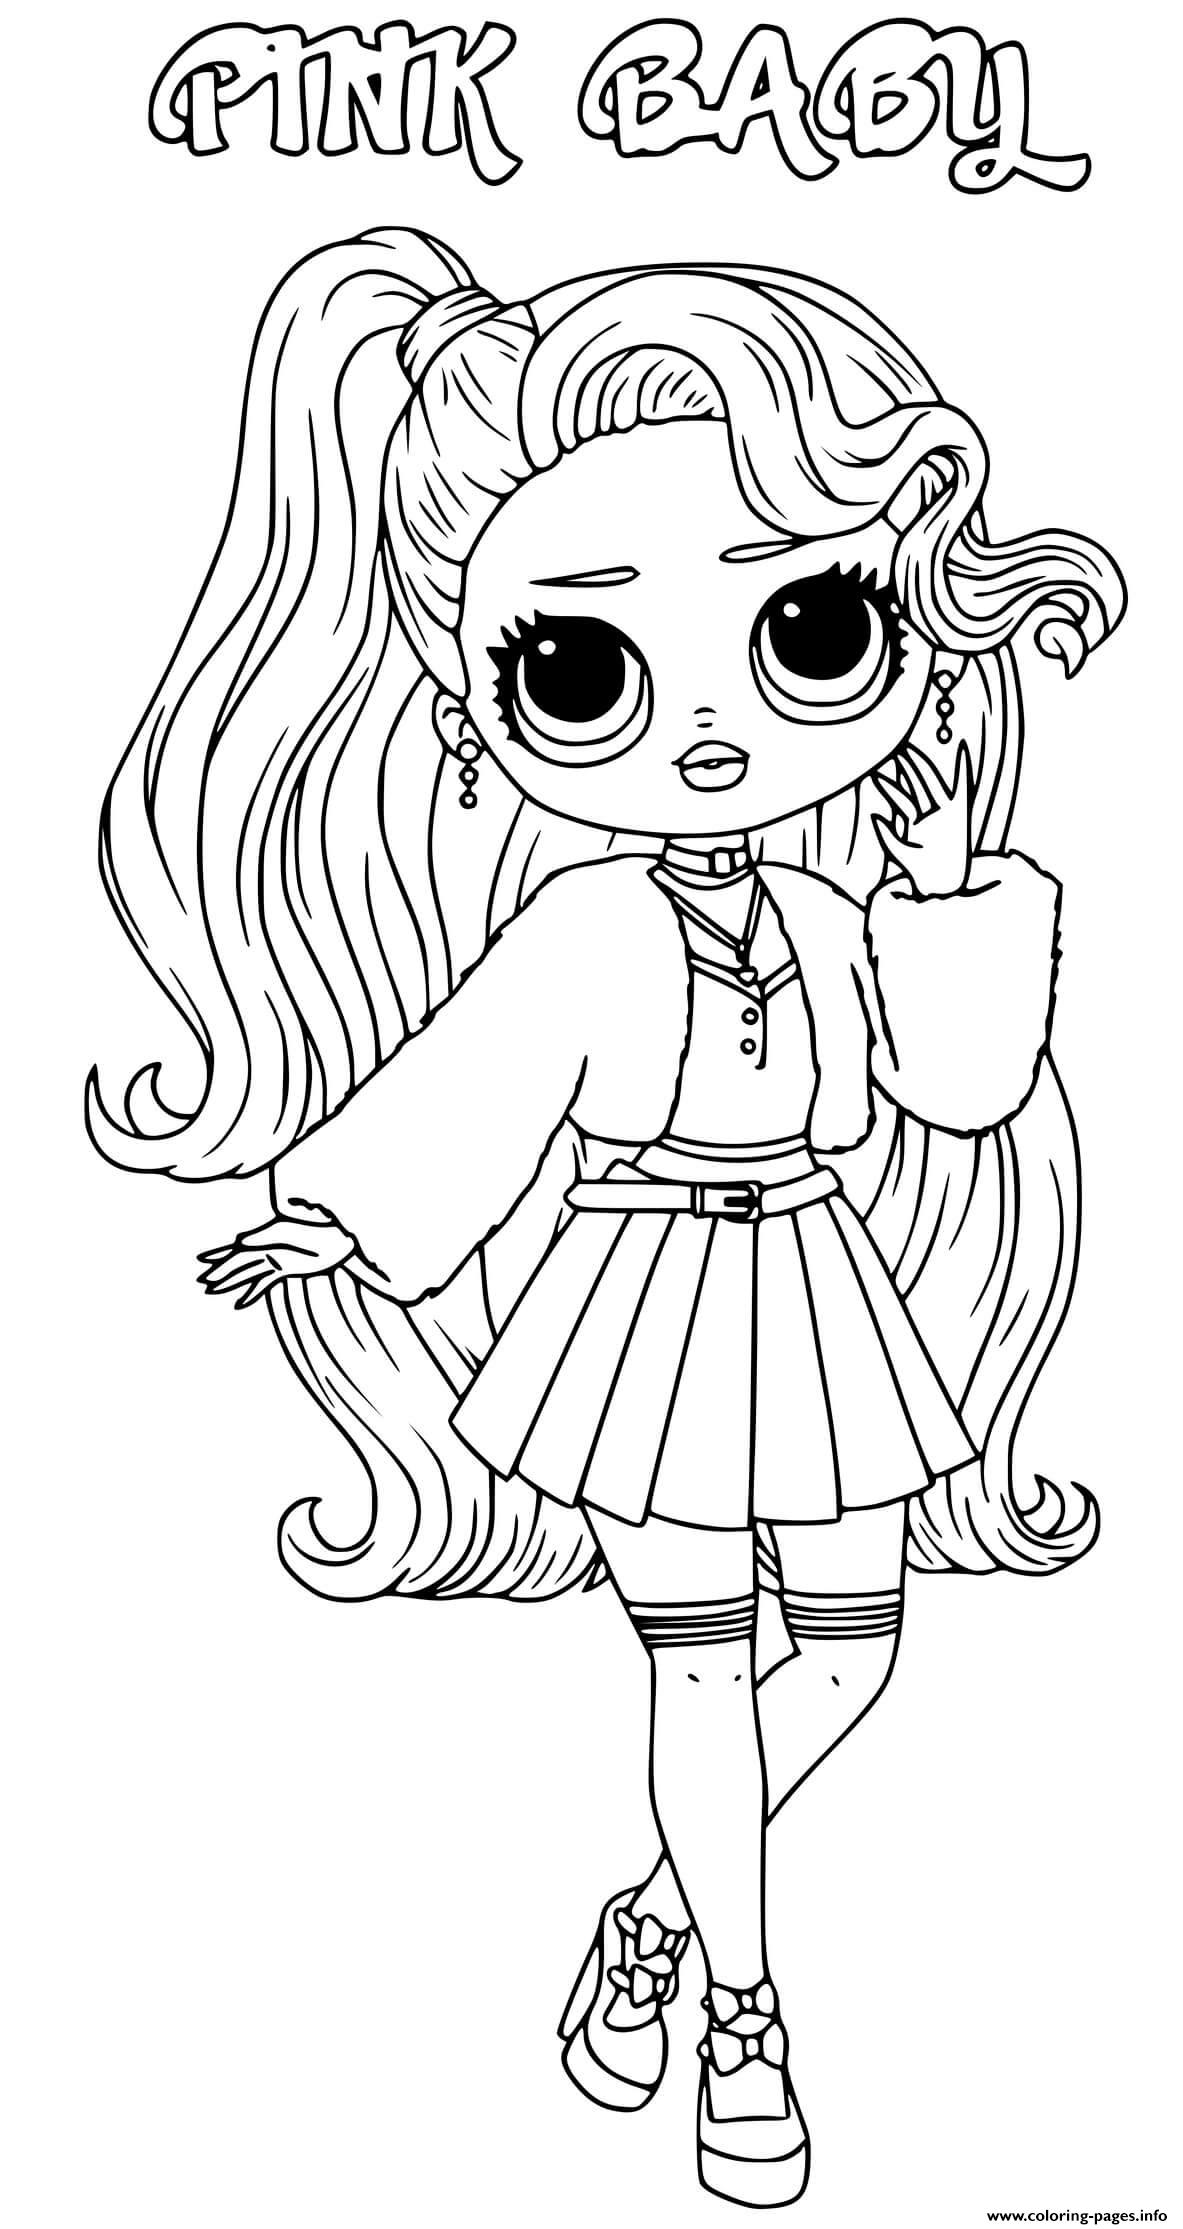 Lol Omg Coloring Pages Printable : coloring, pages, printable, Coloring, Pages, Printable